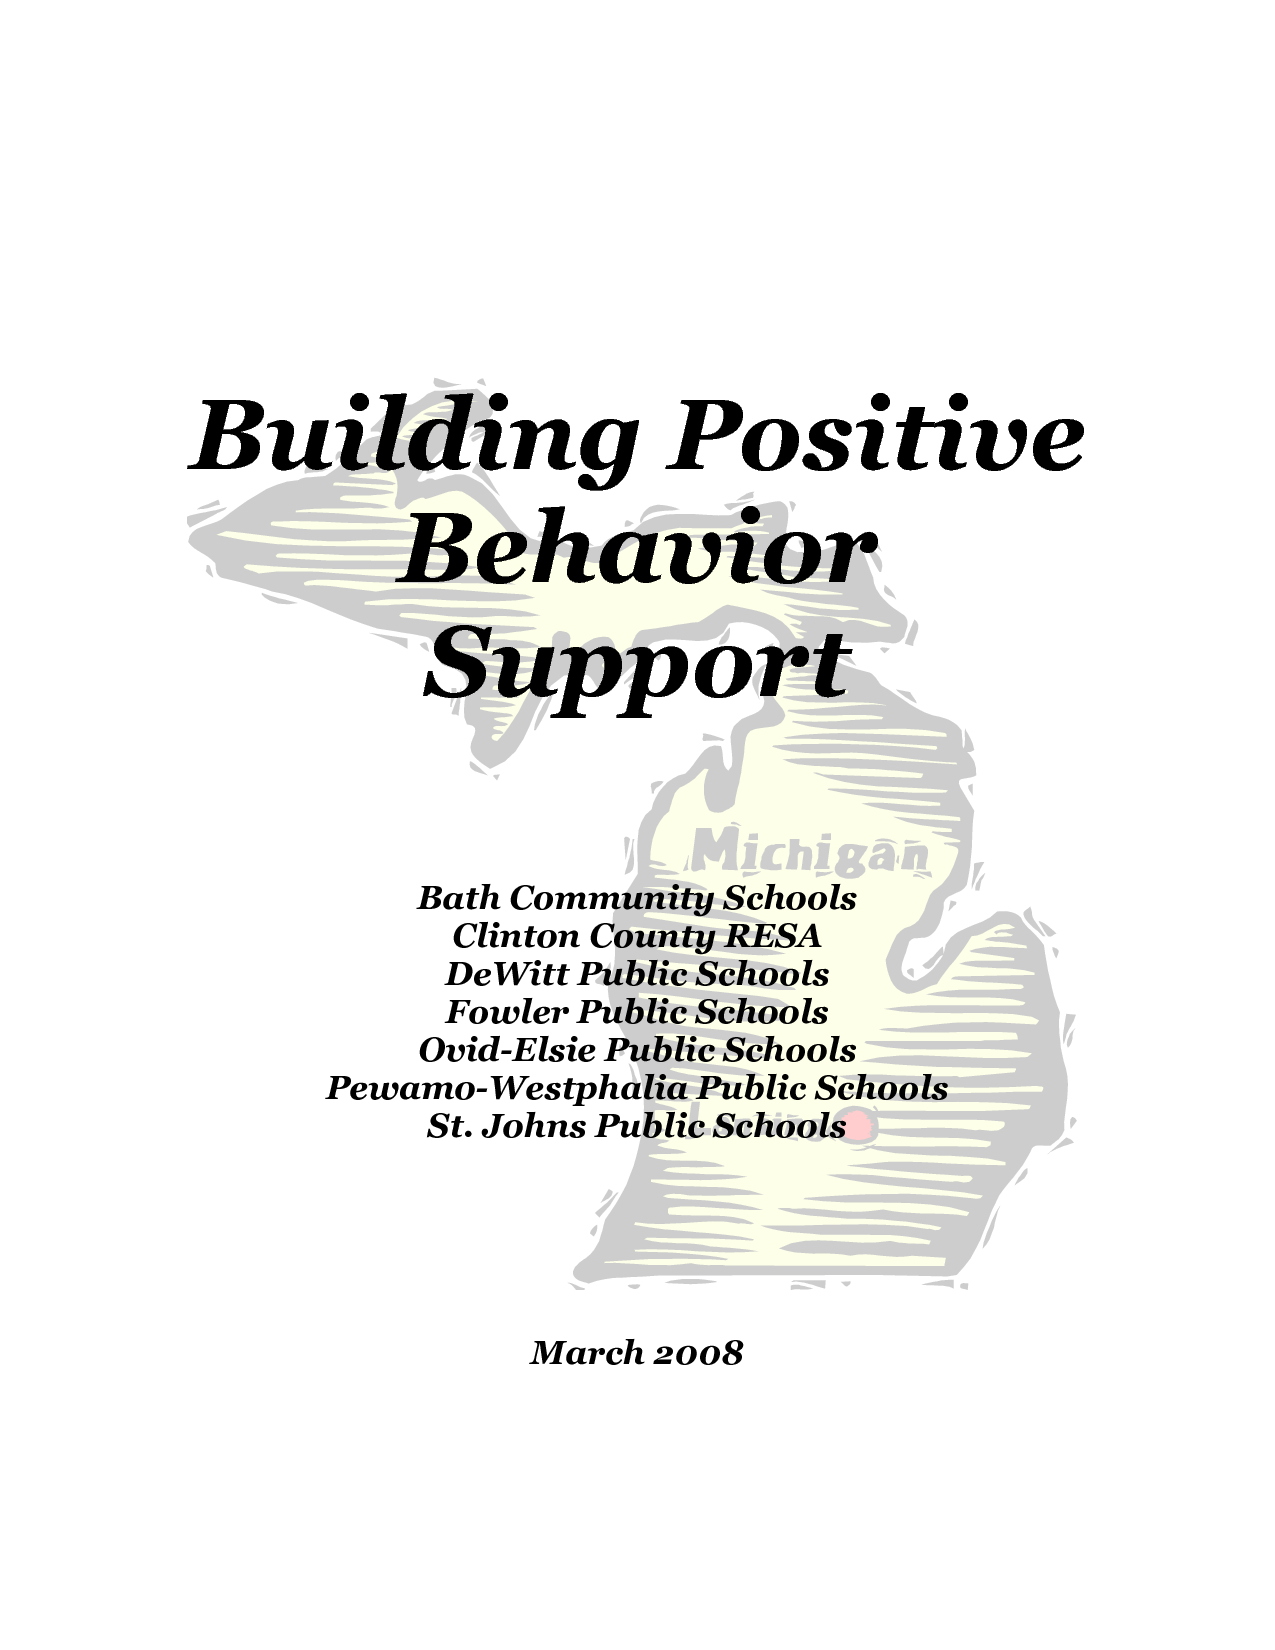 Positive Behavior Support Program